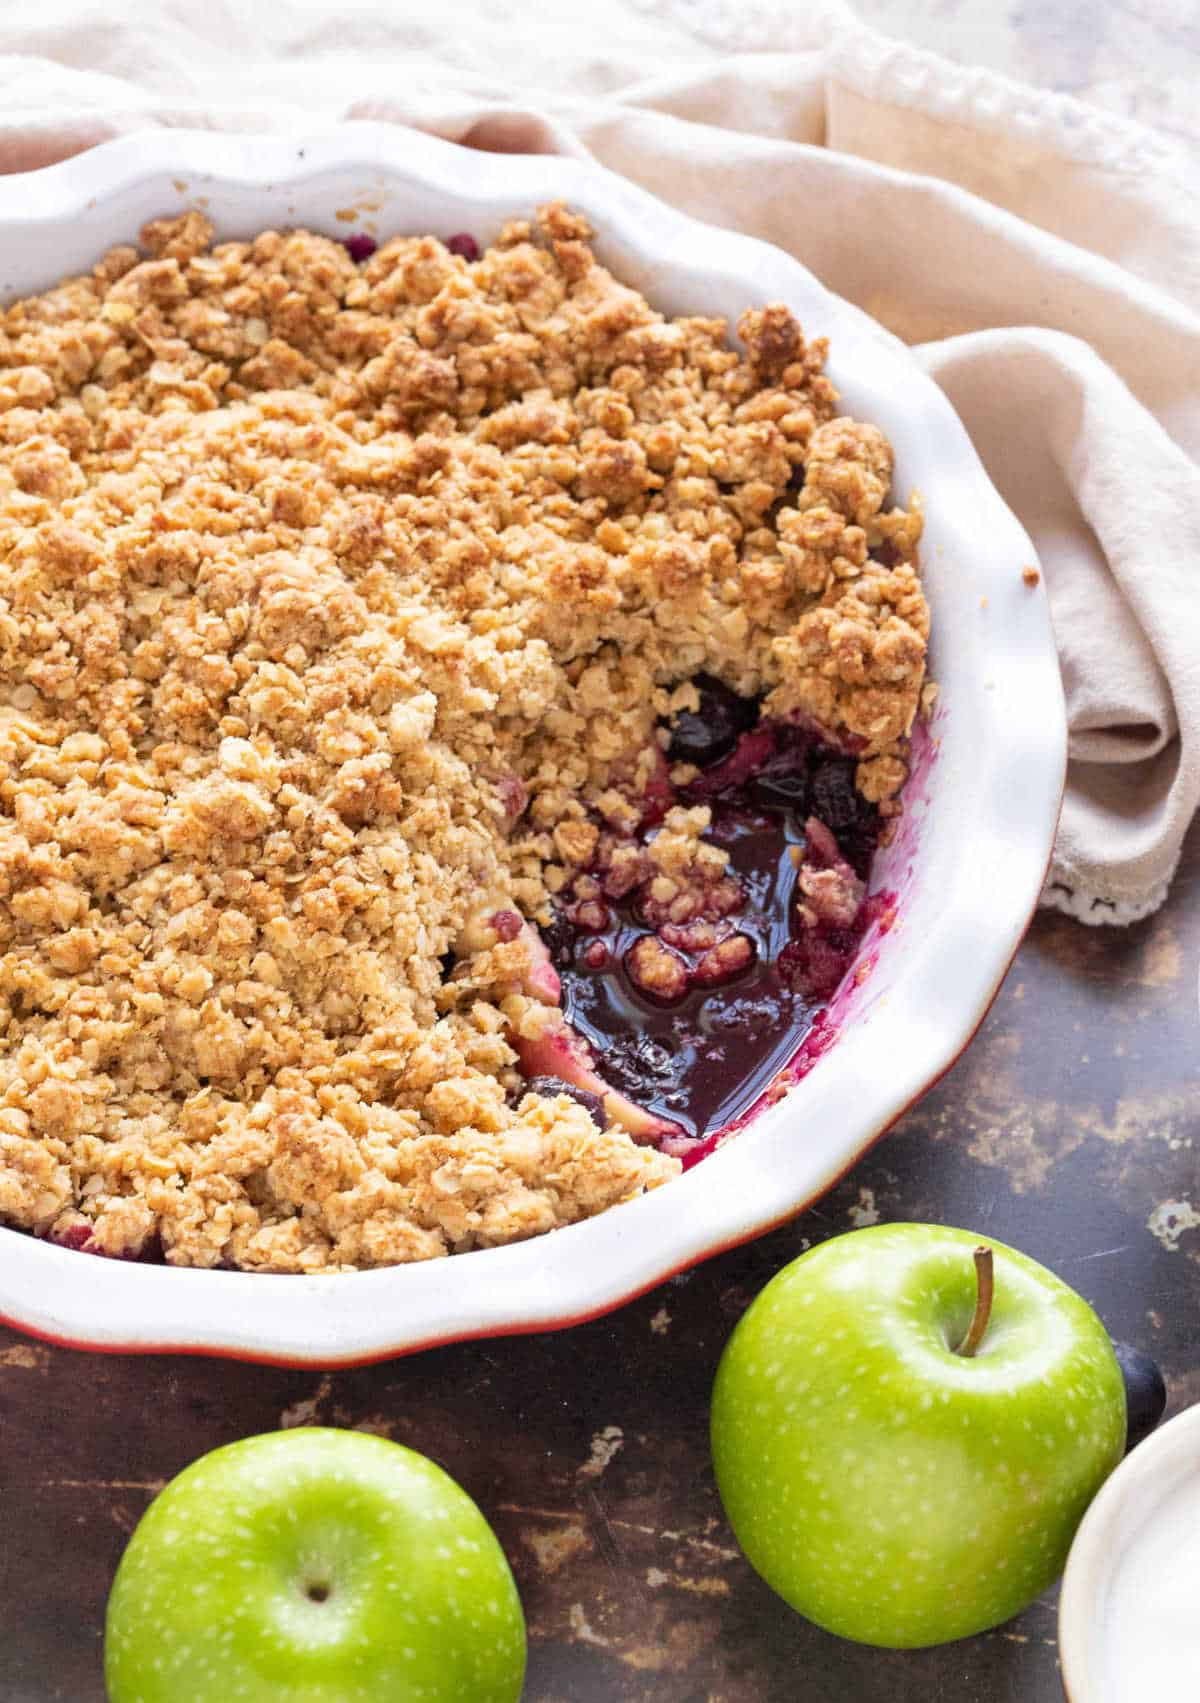 Apple and blueberry crumble in a pie dish.